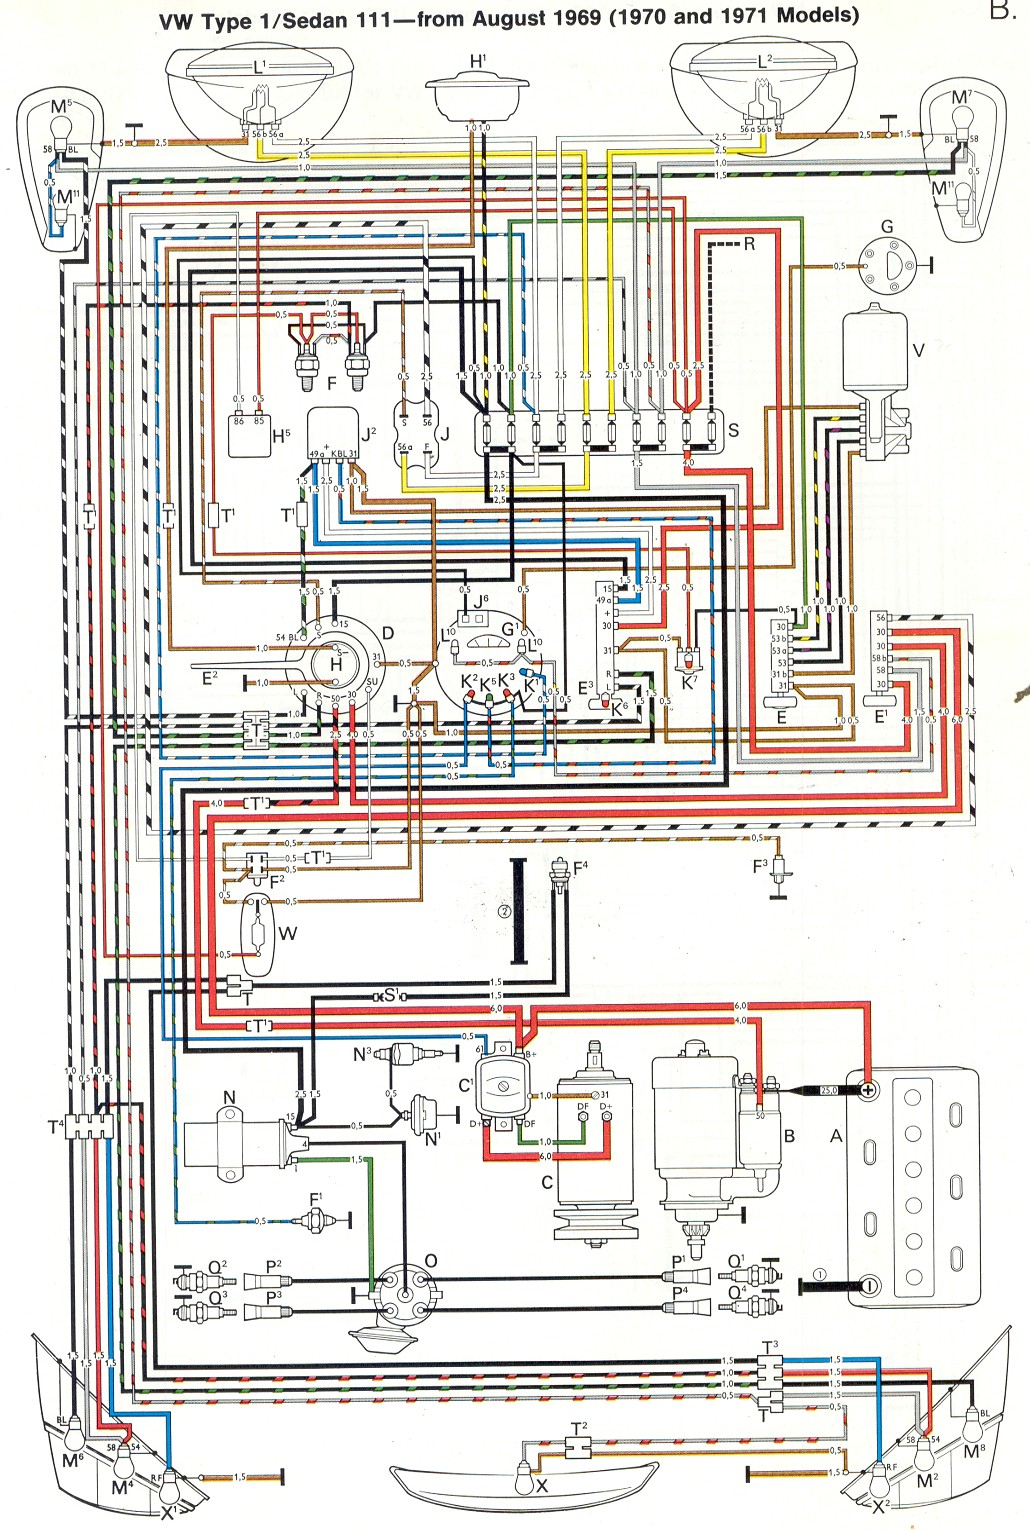 1970 Vw 1600cc Engine Diagram Wiring Library 1975 Volkswagen Beetle